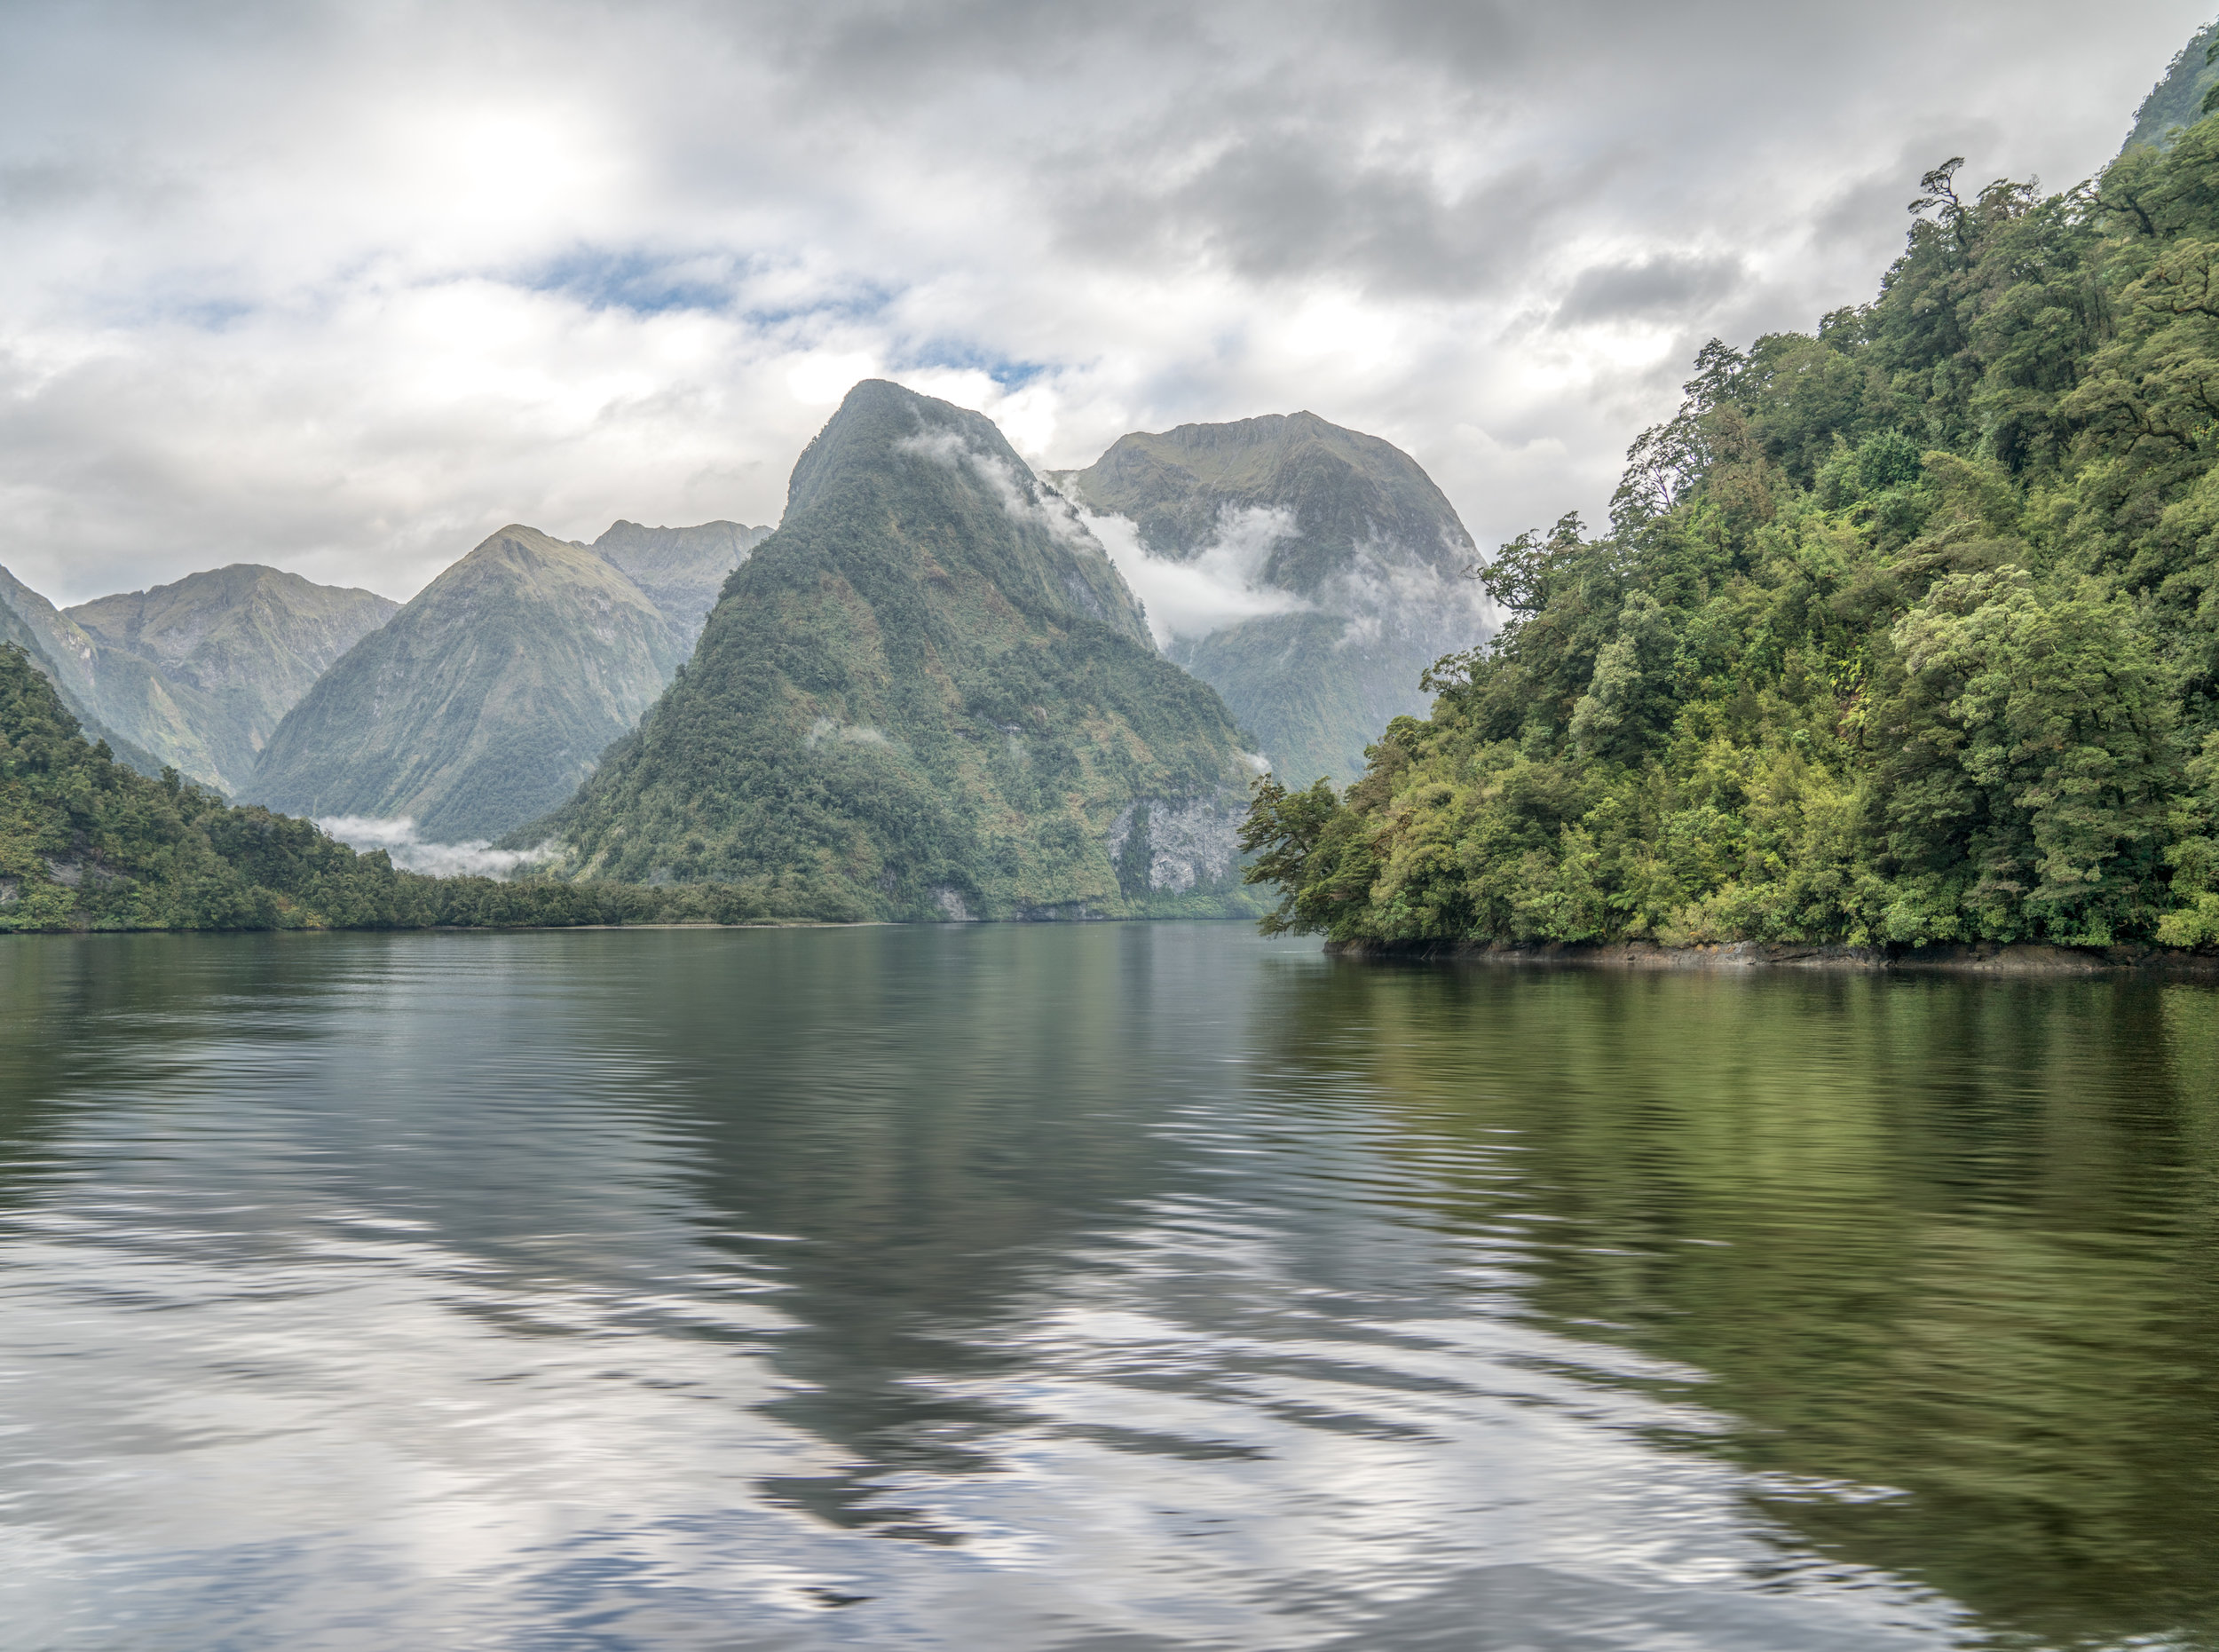 queenstown.com-Doubtful Sound-03-Feb2017-fbook (1 of 1).jpg